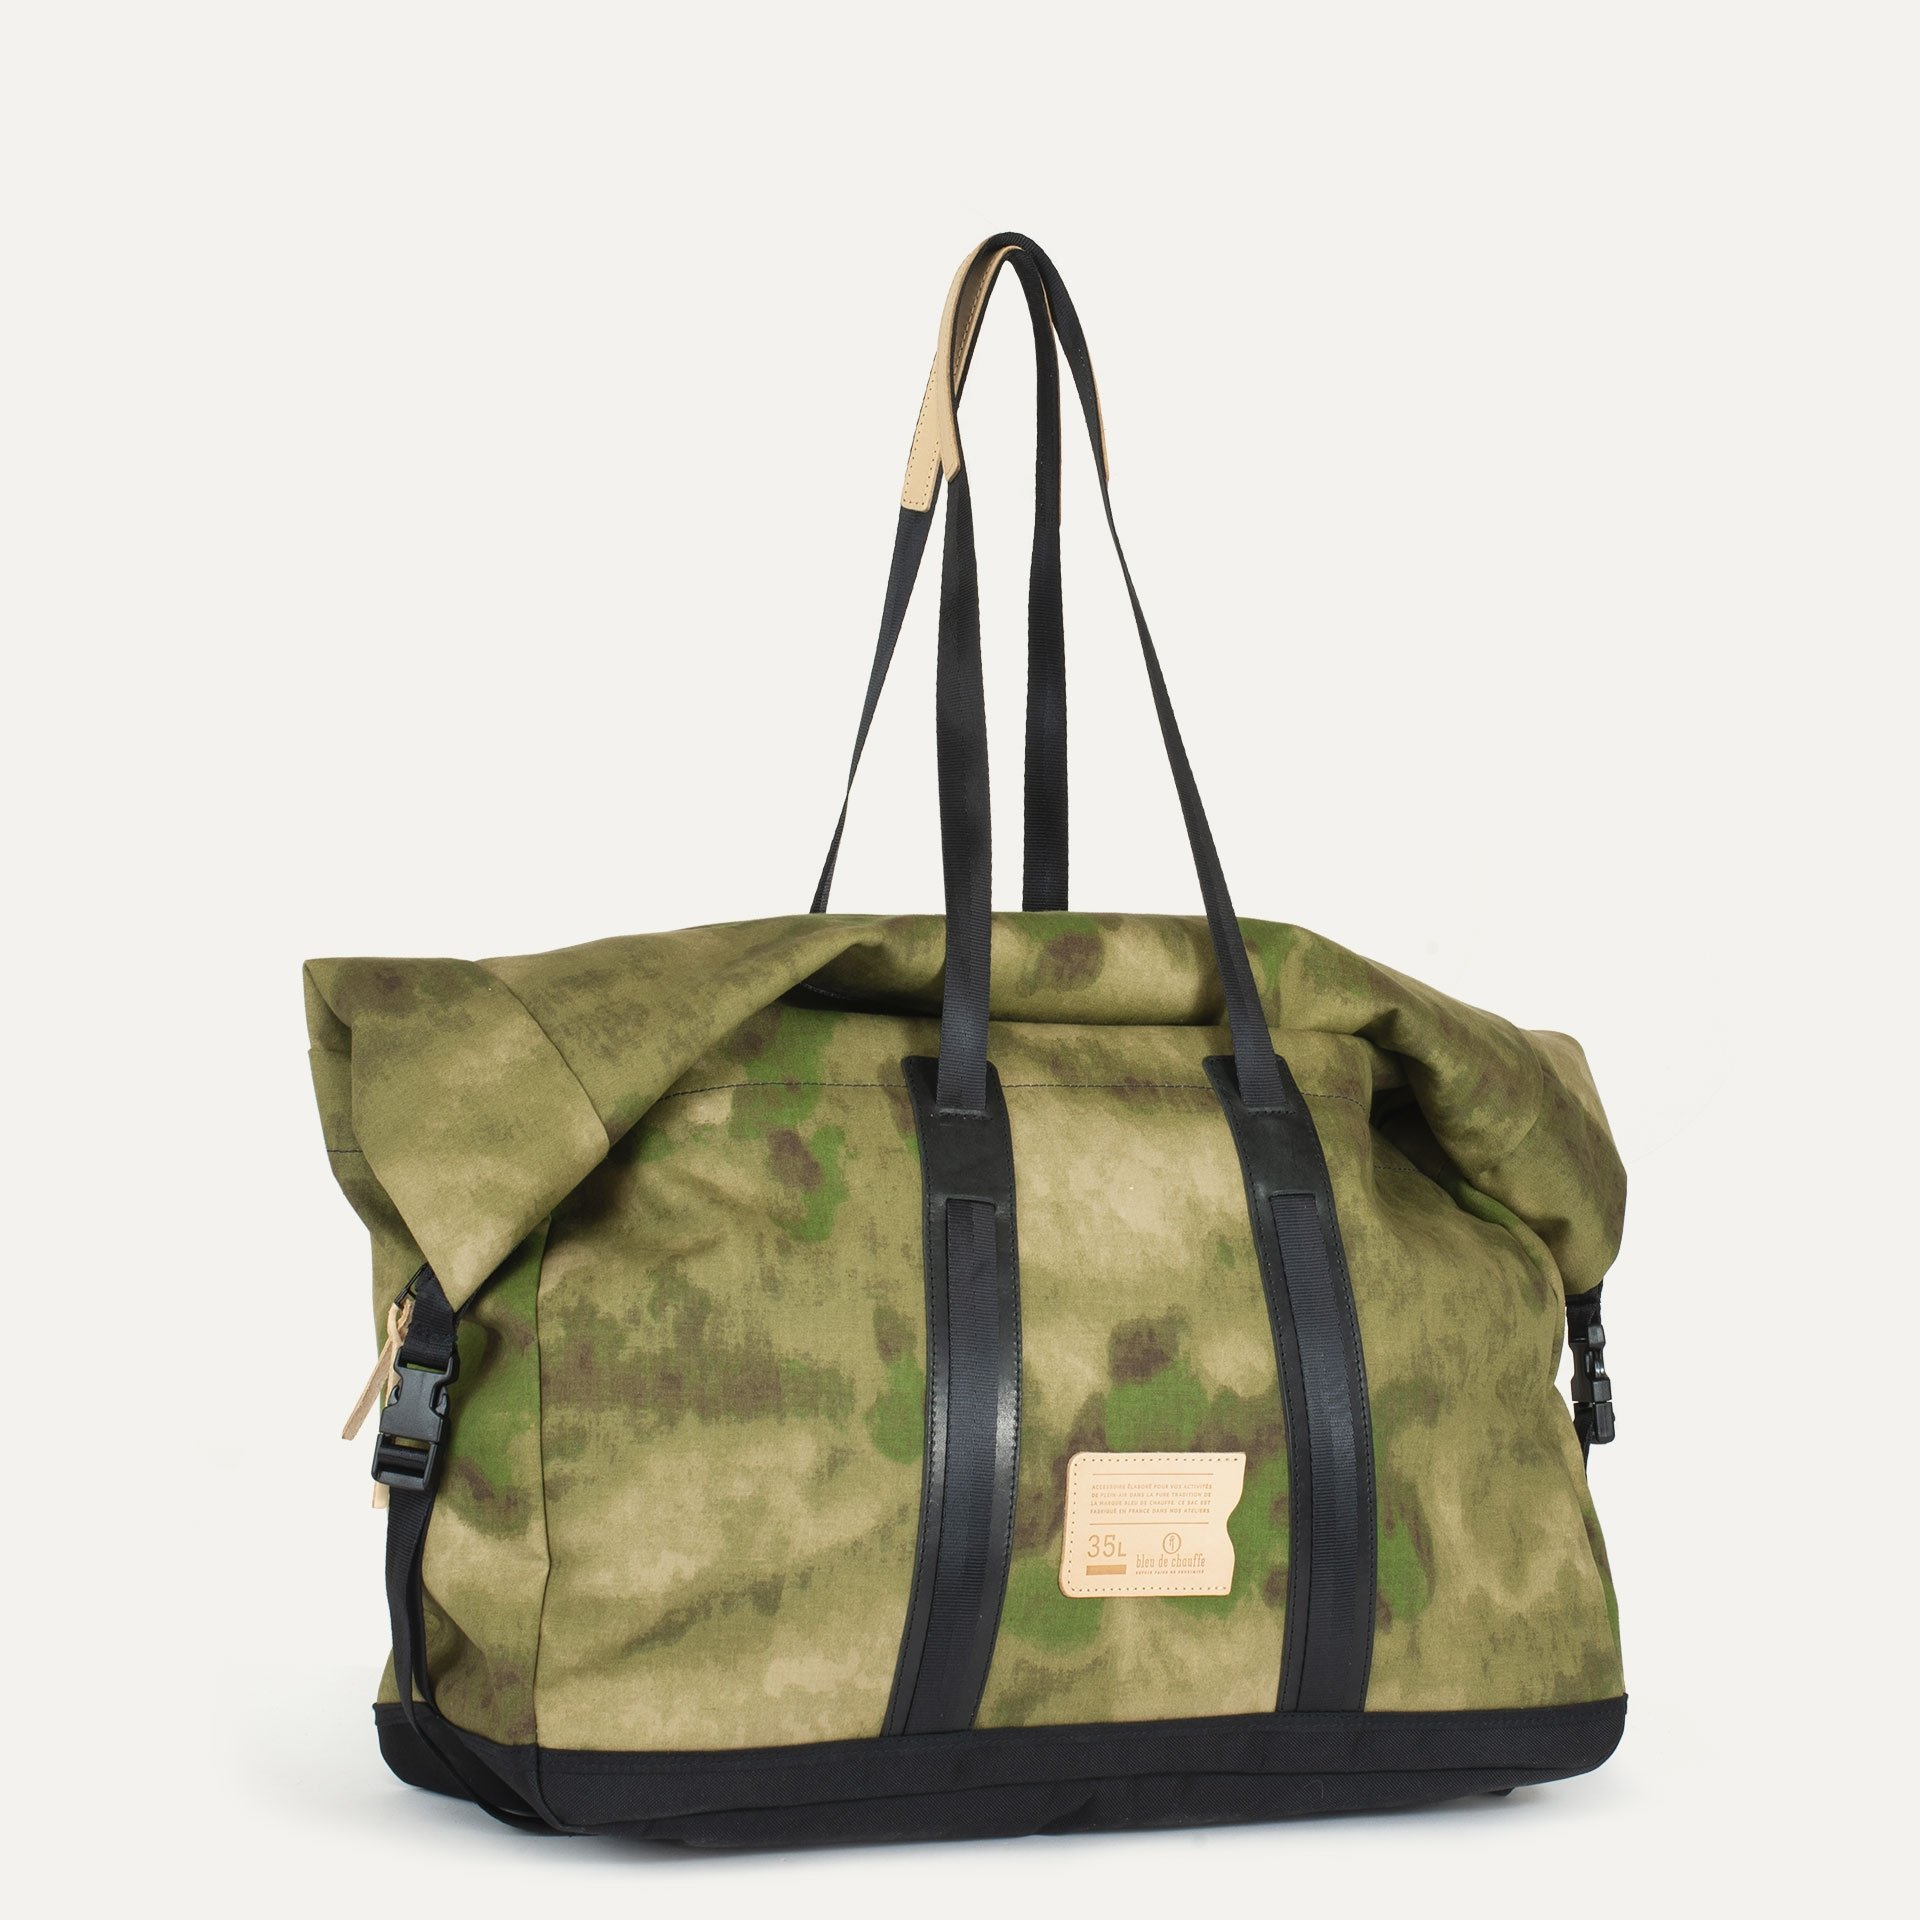 35L Baroud Travel bag - Camo (image n°2)